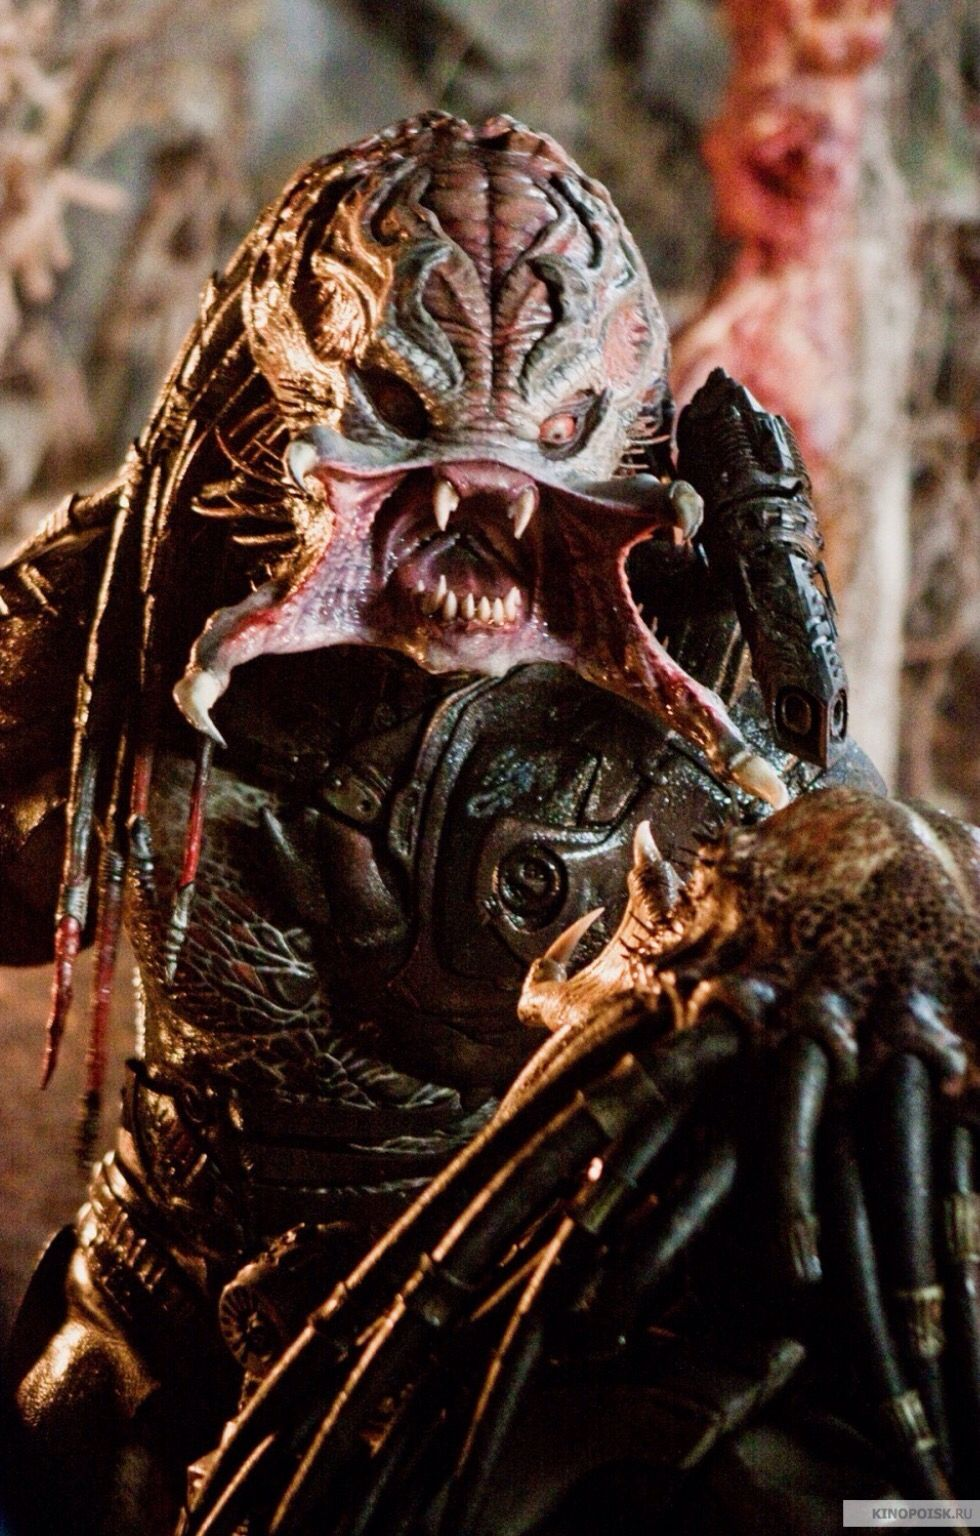 The Movie Predators This Is Not What I Look Like In Real Life I Do Not Shape Shift I Look As I Am What You See Is What You Get